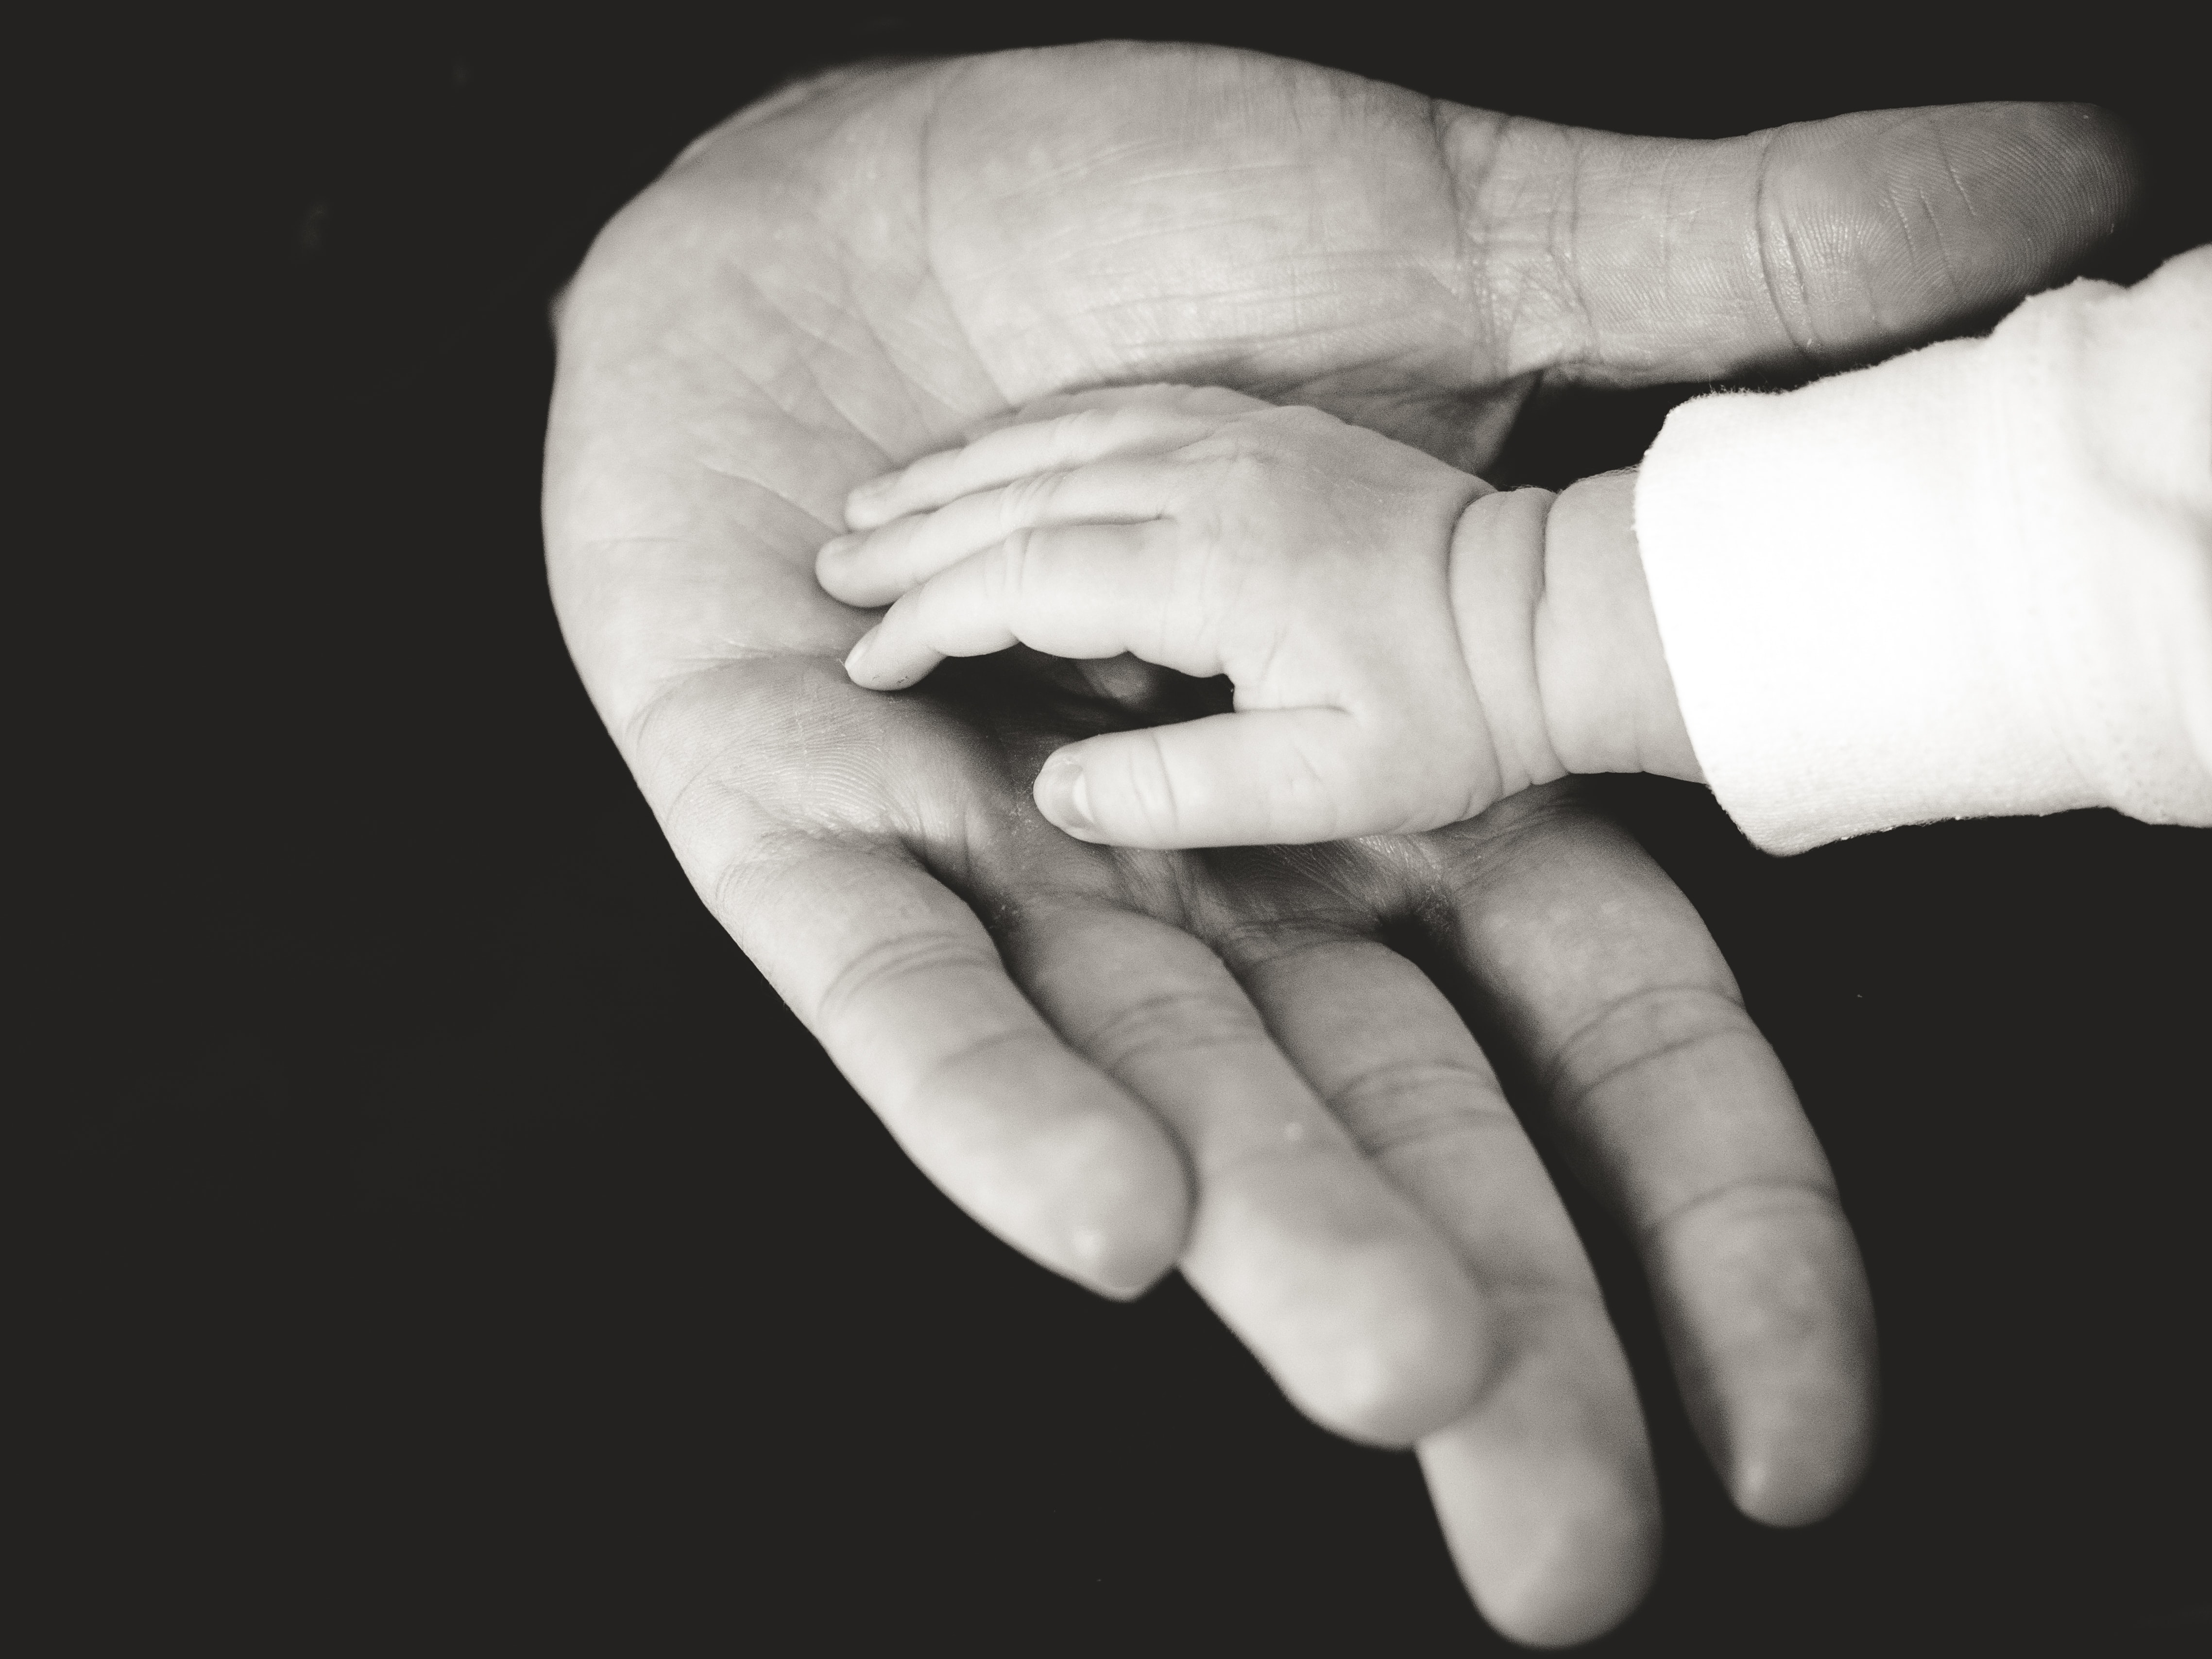 A black and white close up shot of a man's hand, with his child's hand in his palm